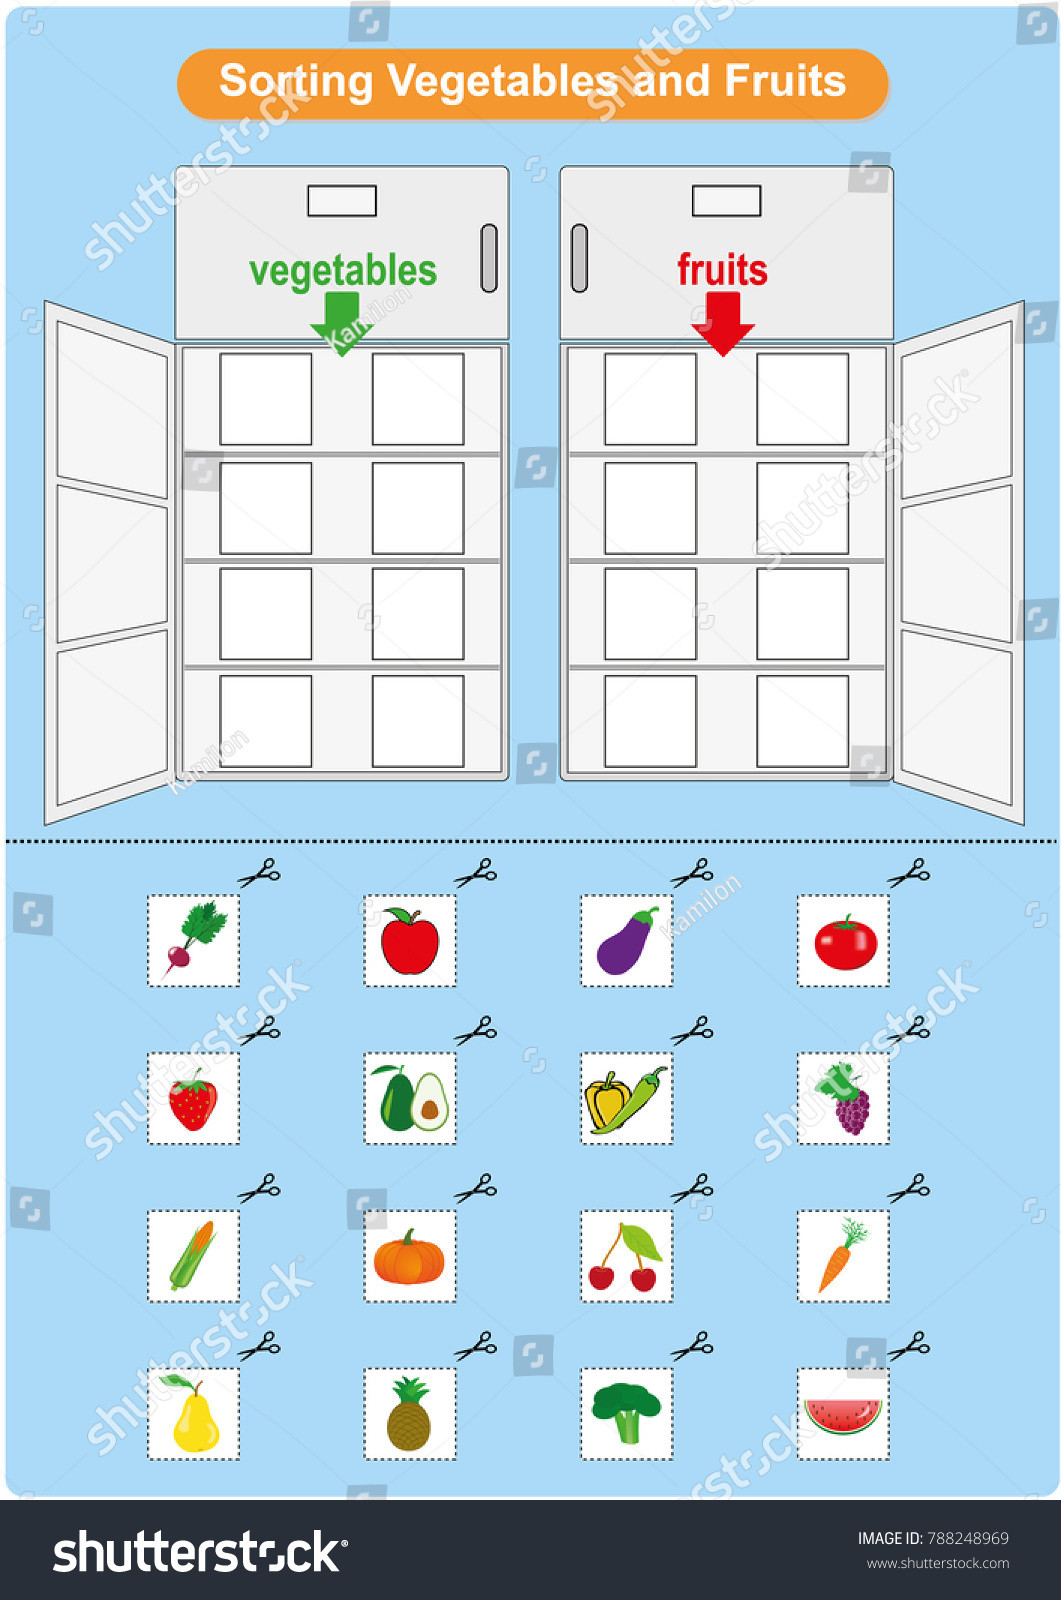 Preschool Fruits and Vegetables Worksheets sorting Fruits Ve Ables Inrefrigerator Worksheet